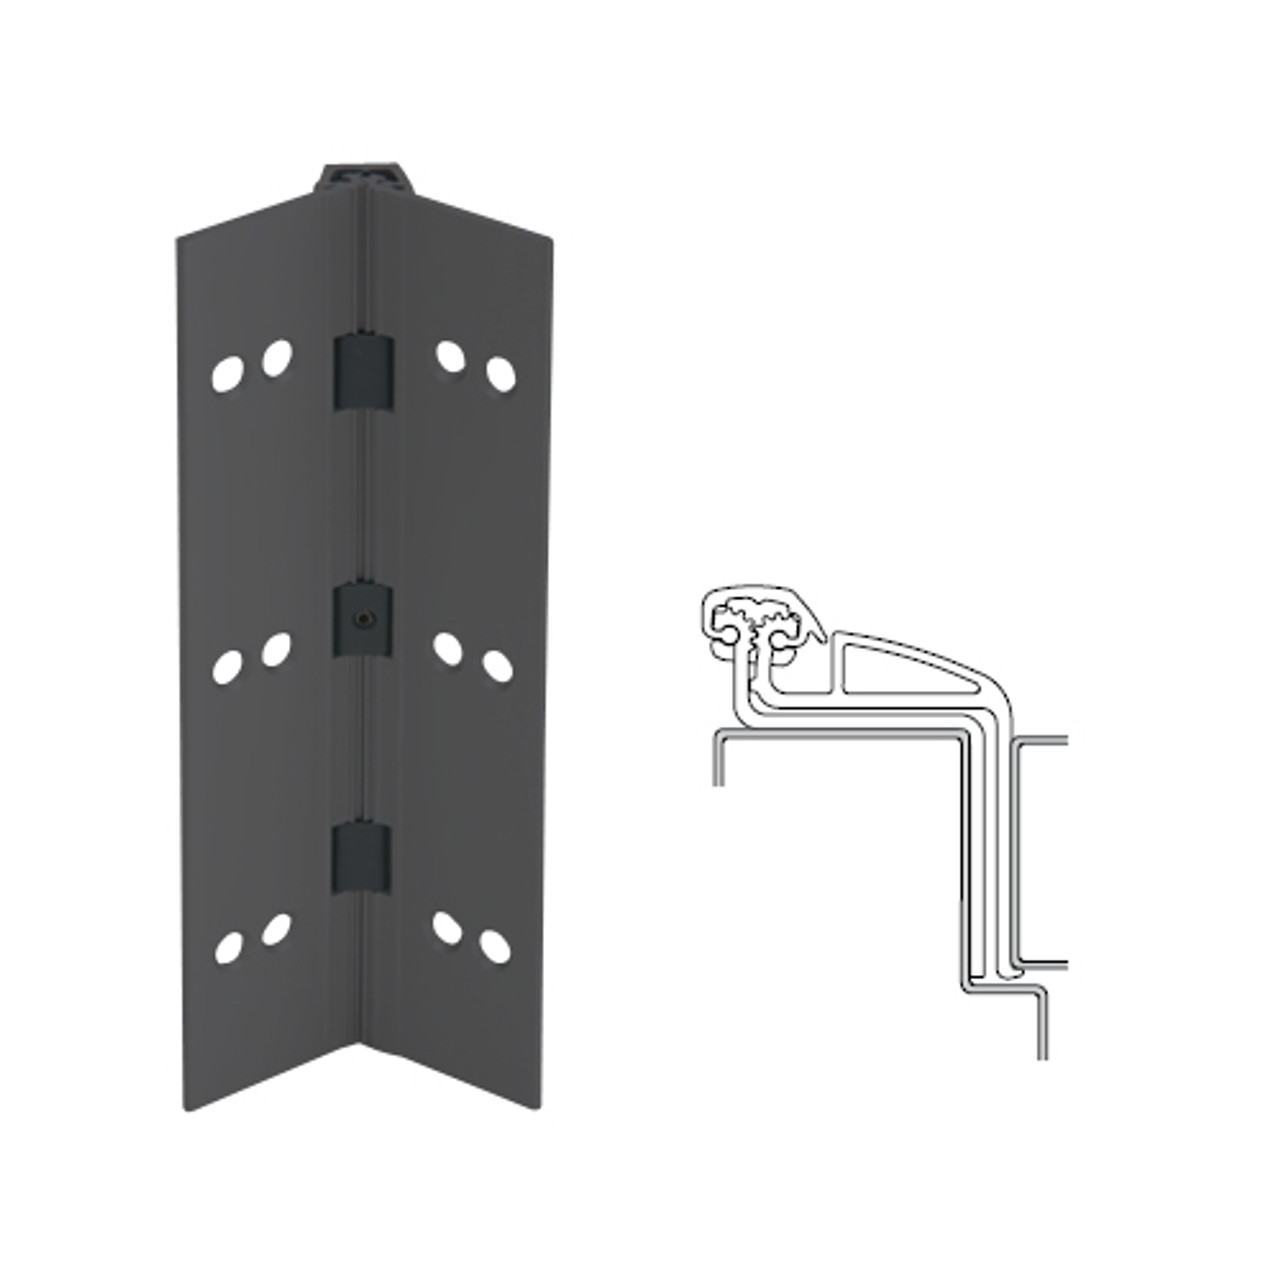 041XY-315AN-95-TF IVES Full Mortise Continuous Geared Hinges with Thread Forming Screws in Anodized Black